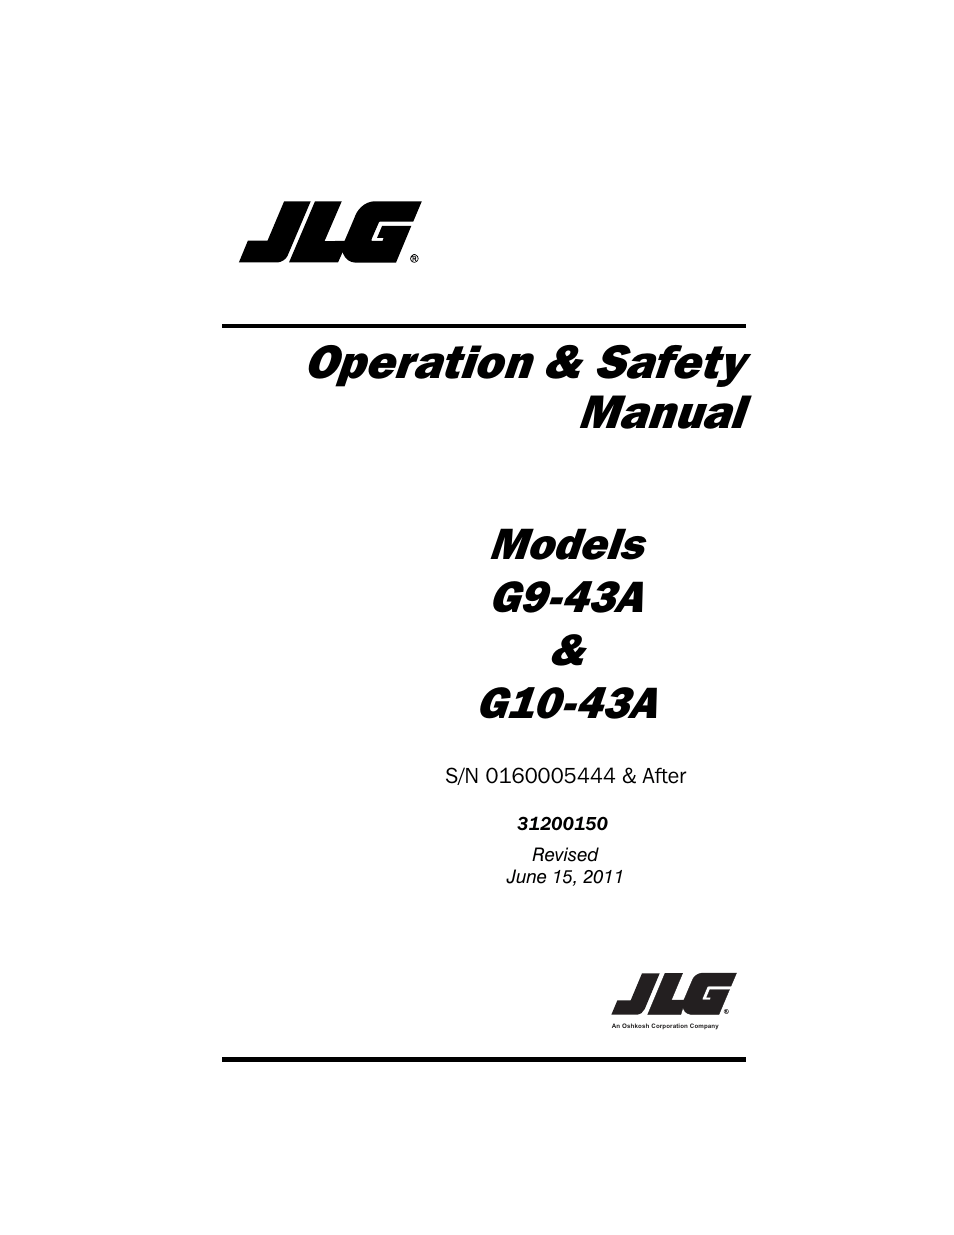 JLG G10-43A (0160005444 & After) Operator Manual User